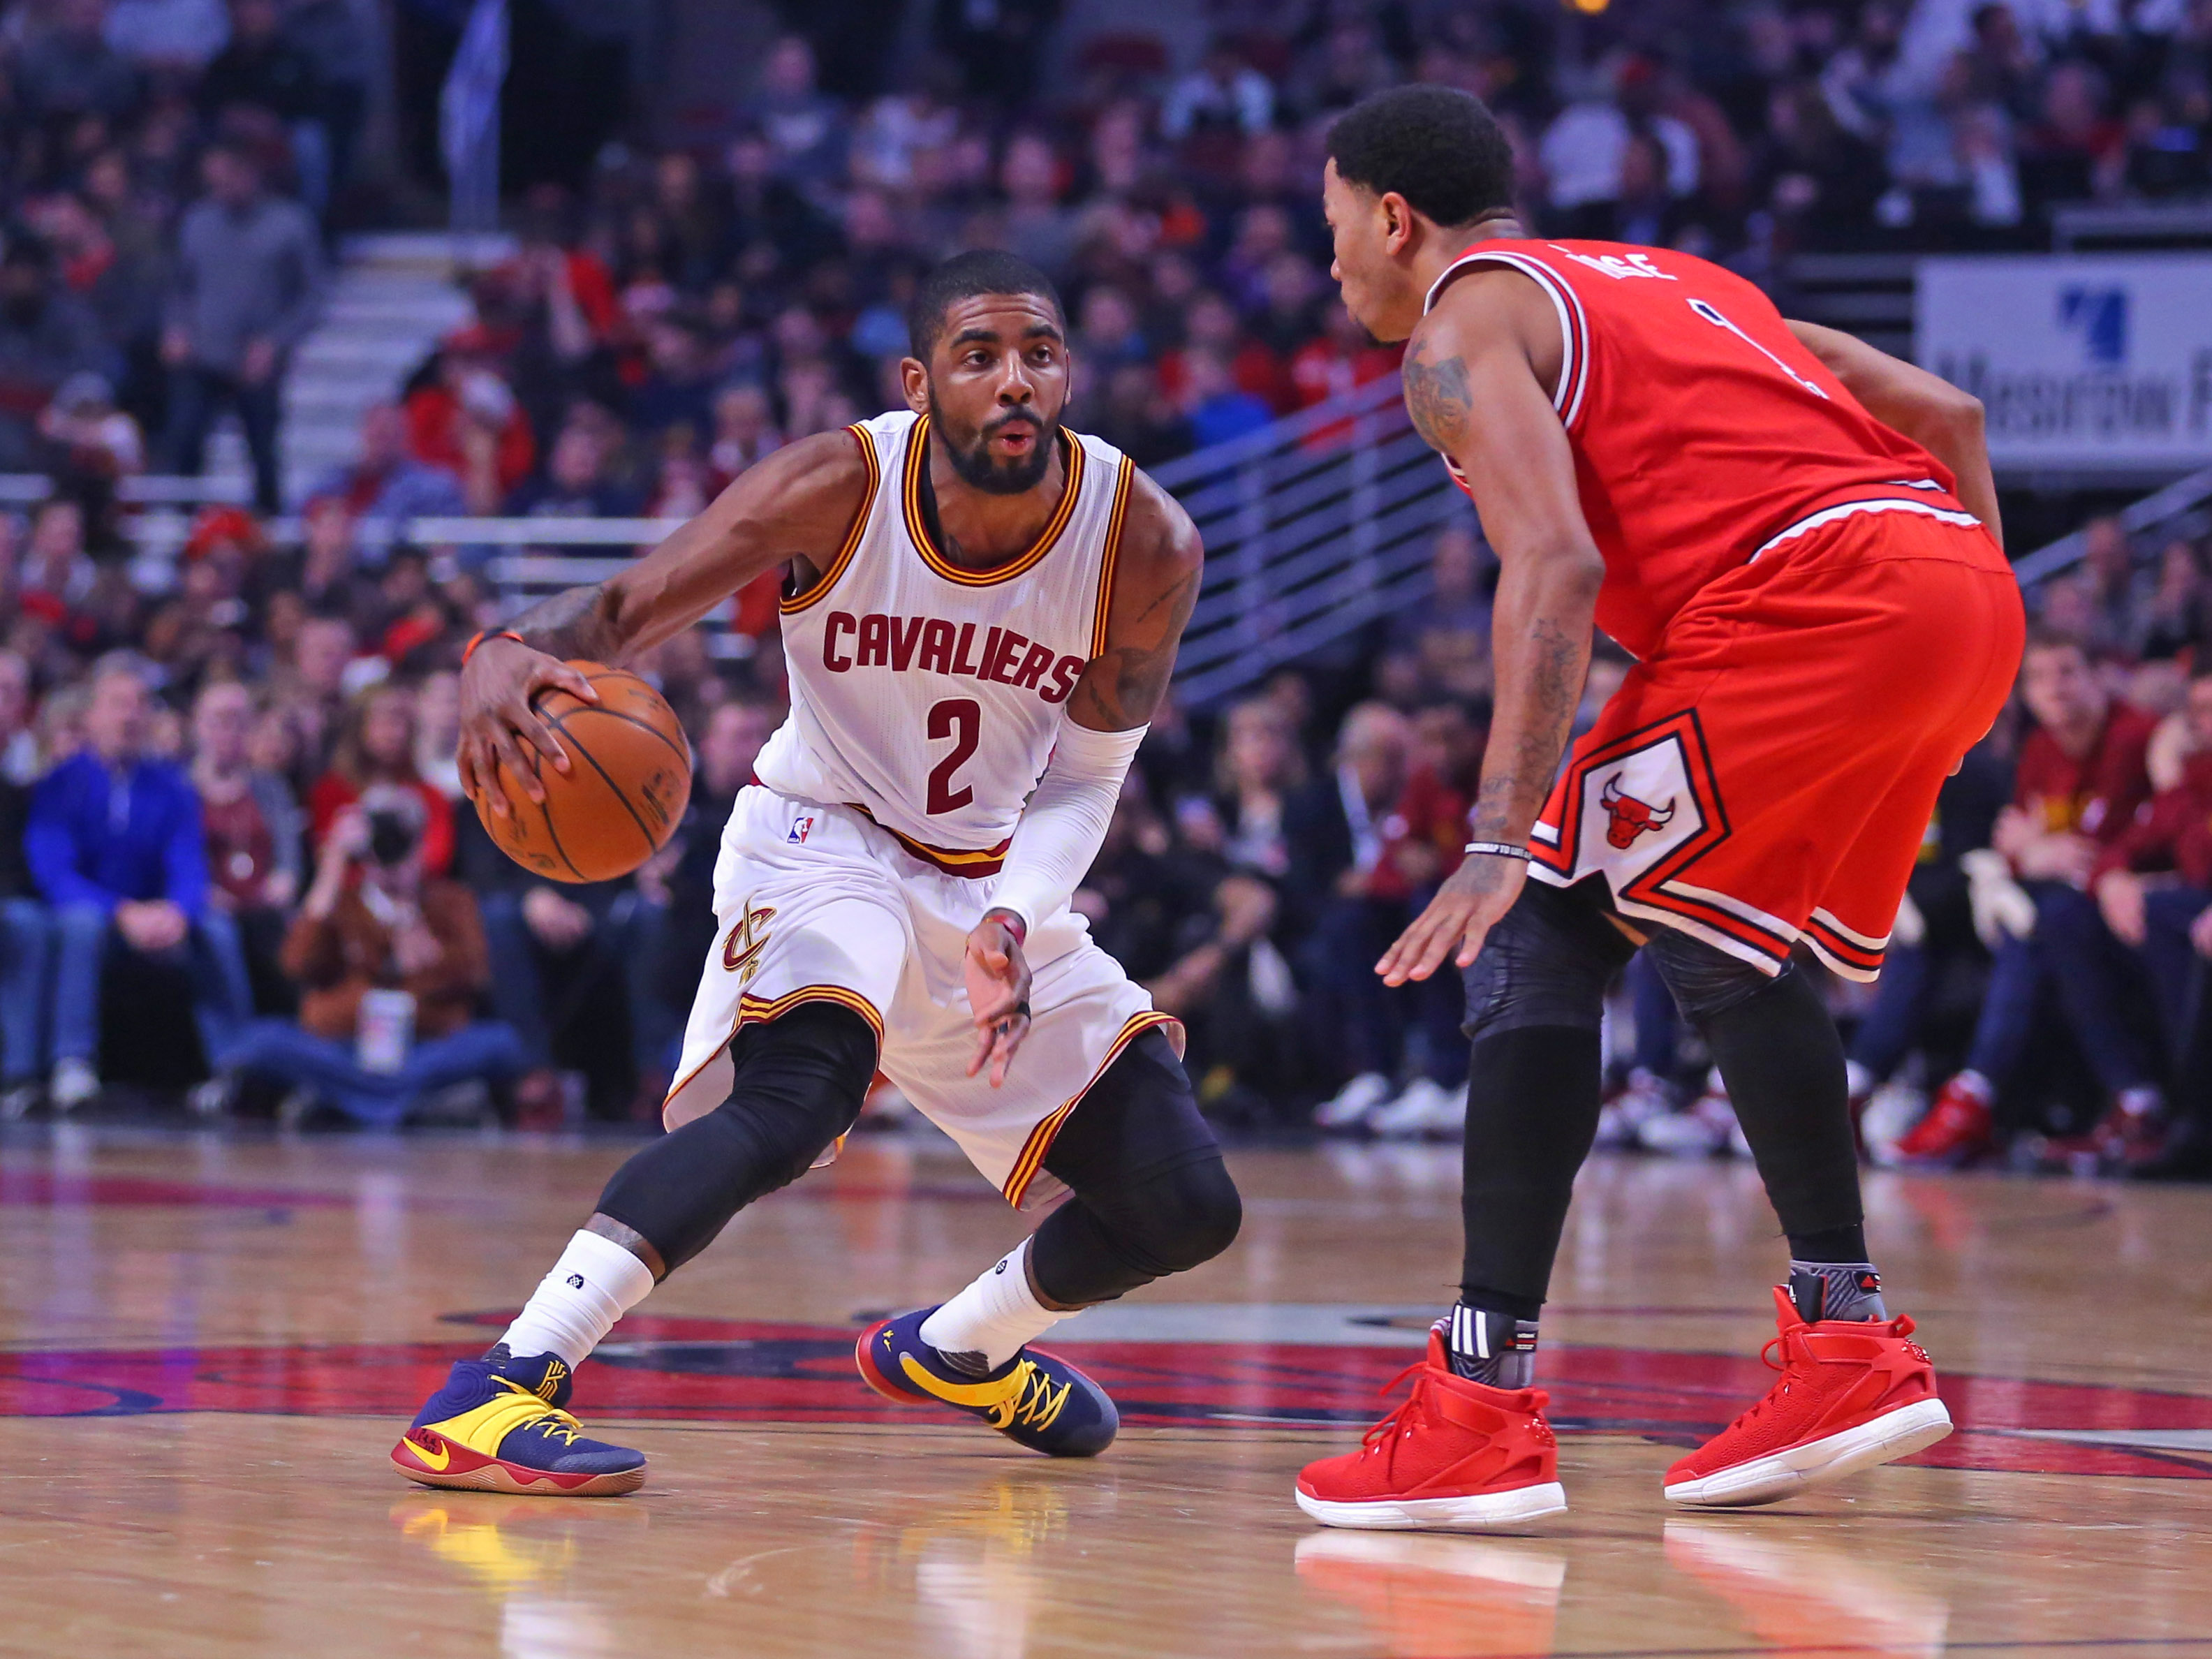 kyrie irving - photo #7